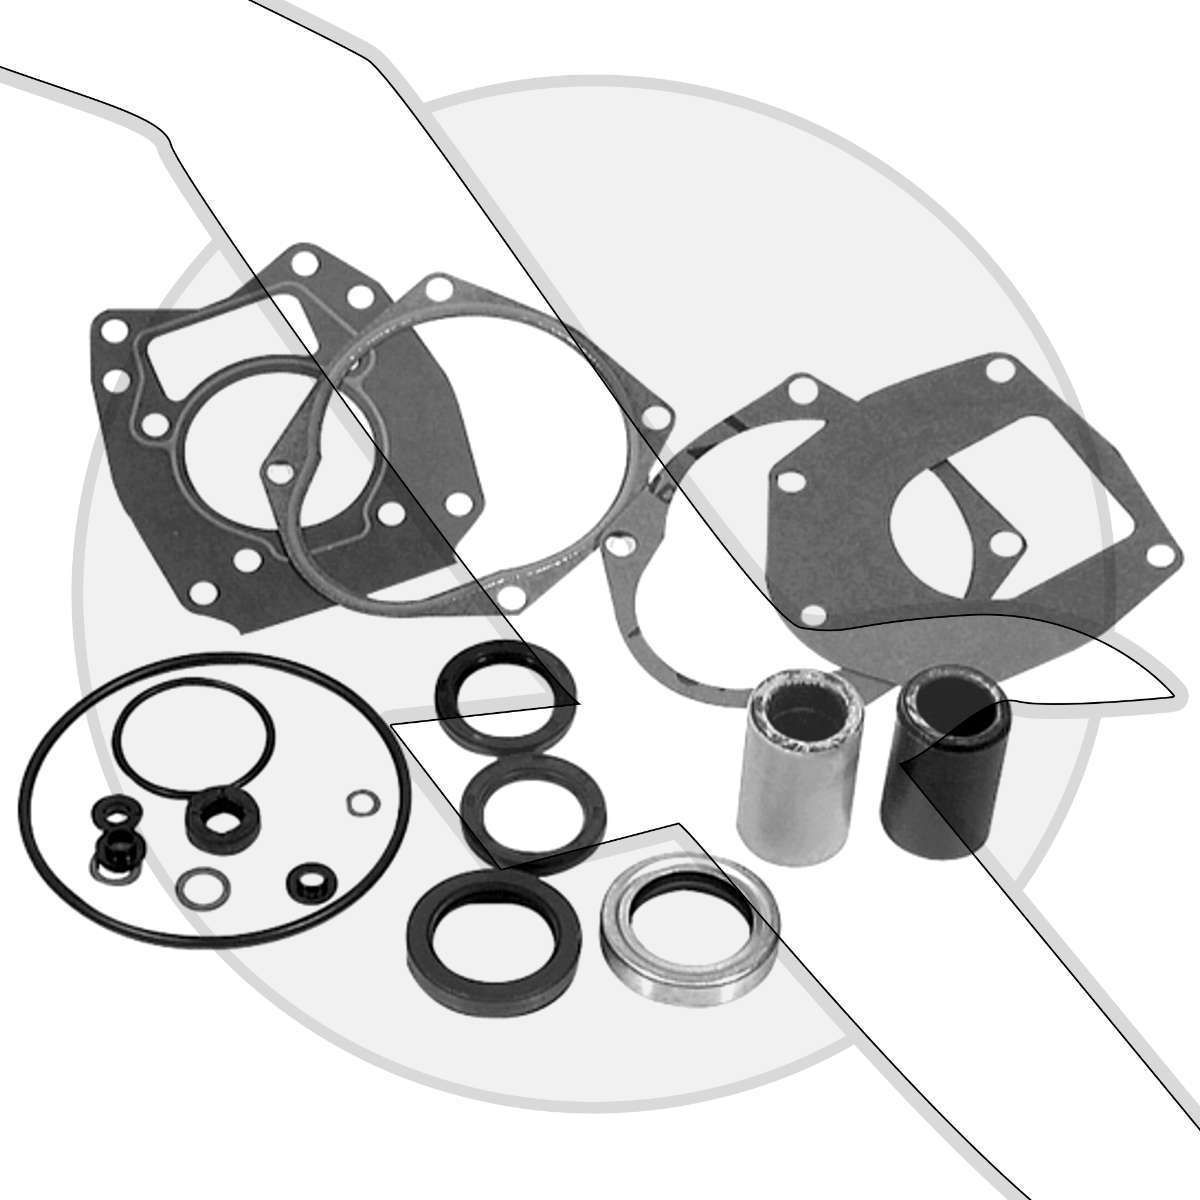 mercury marine outboard lower unit gear housing seal kit 26 43035a4 115Hp Evinrude Boat Motor mercury marine outboard lower unit gear housing seal kit 26 43035a4